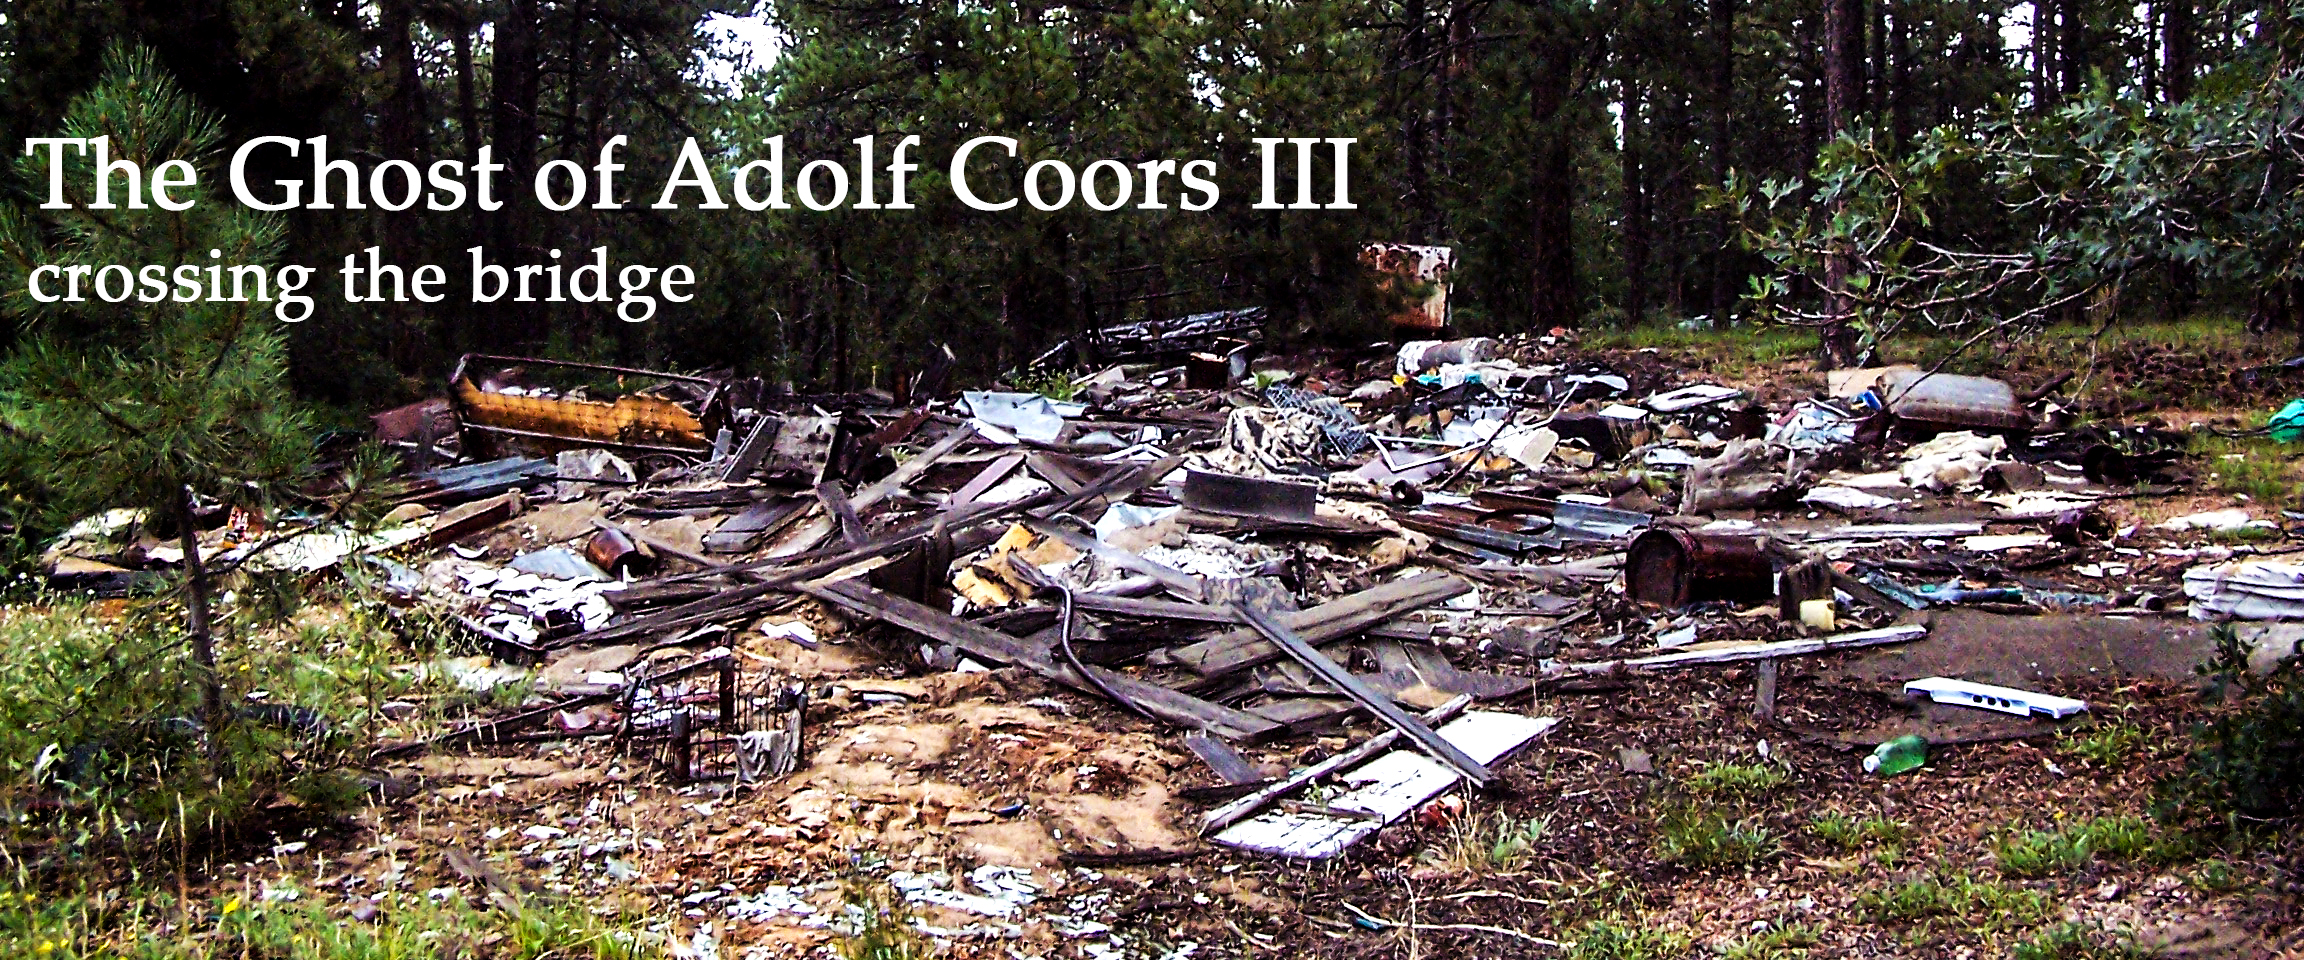 Colorado Urban Legends The Ghost of Adolph Coors III